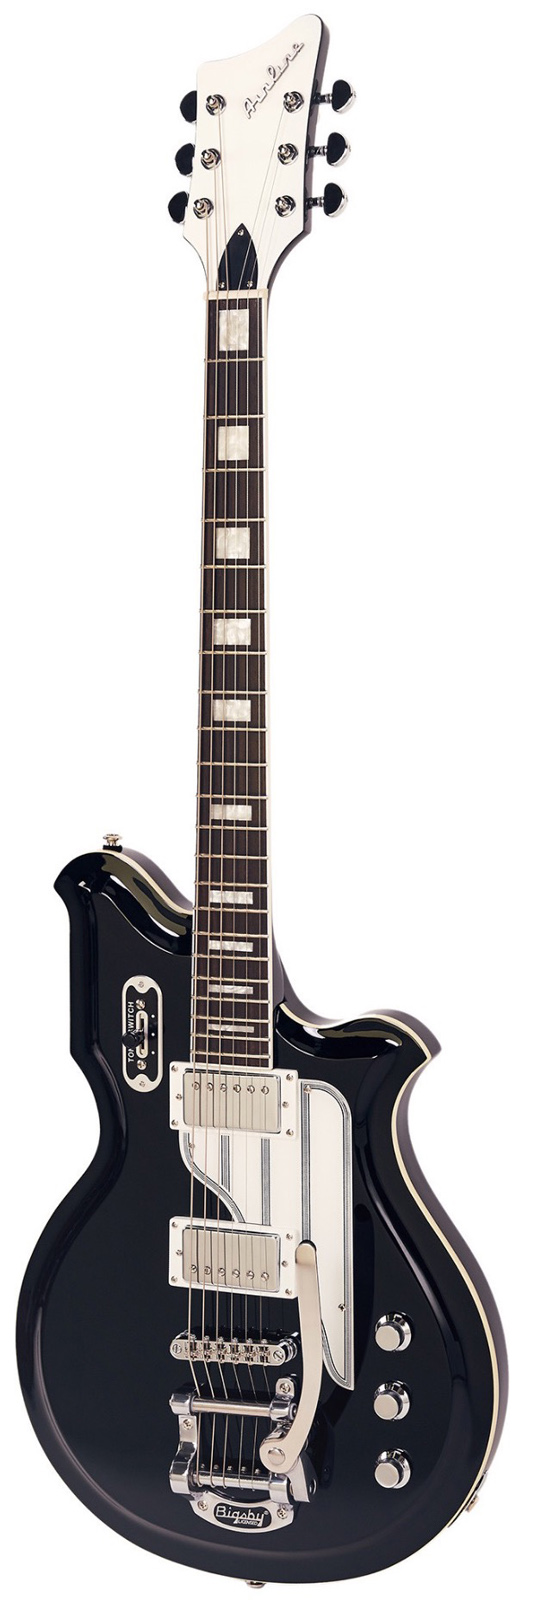 EASTWOOD AIRLINE MAP BARITONE DLX BLACK